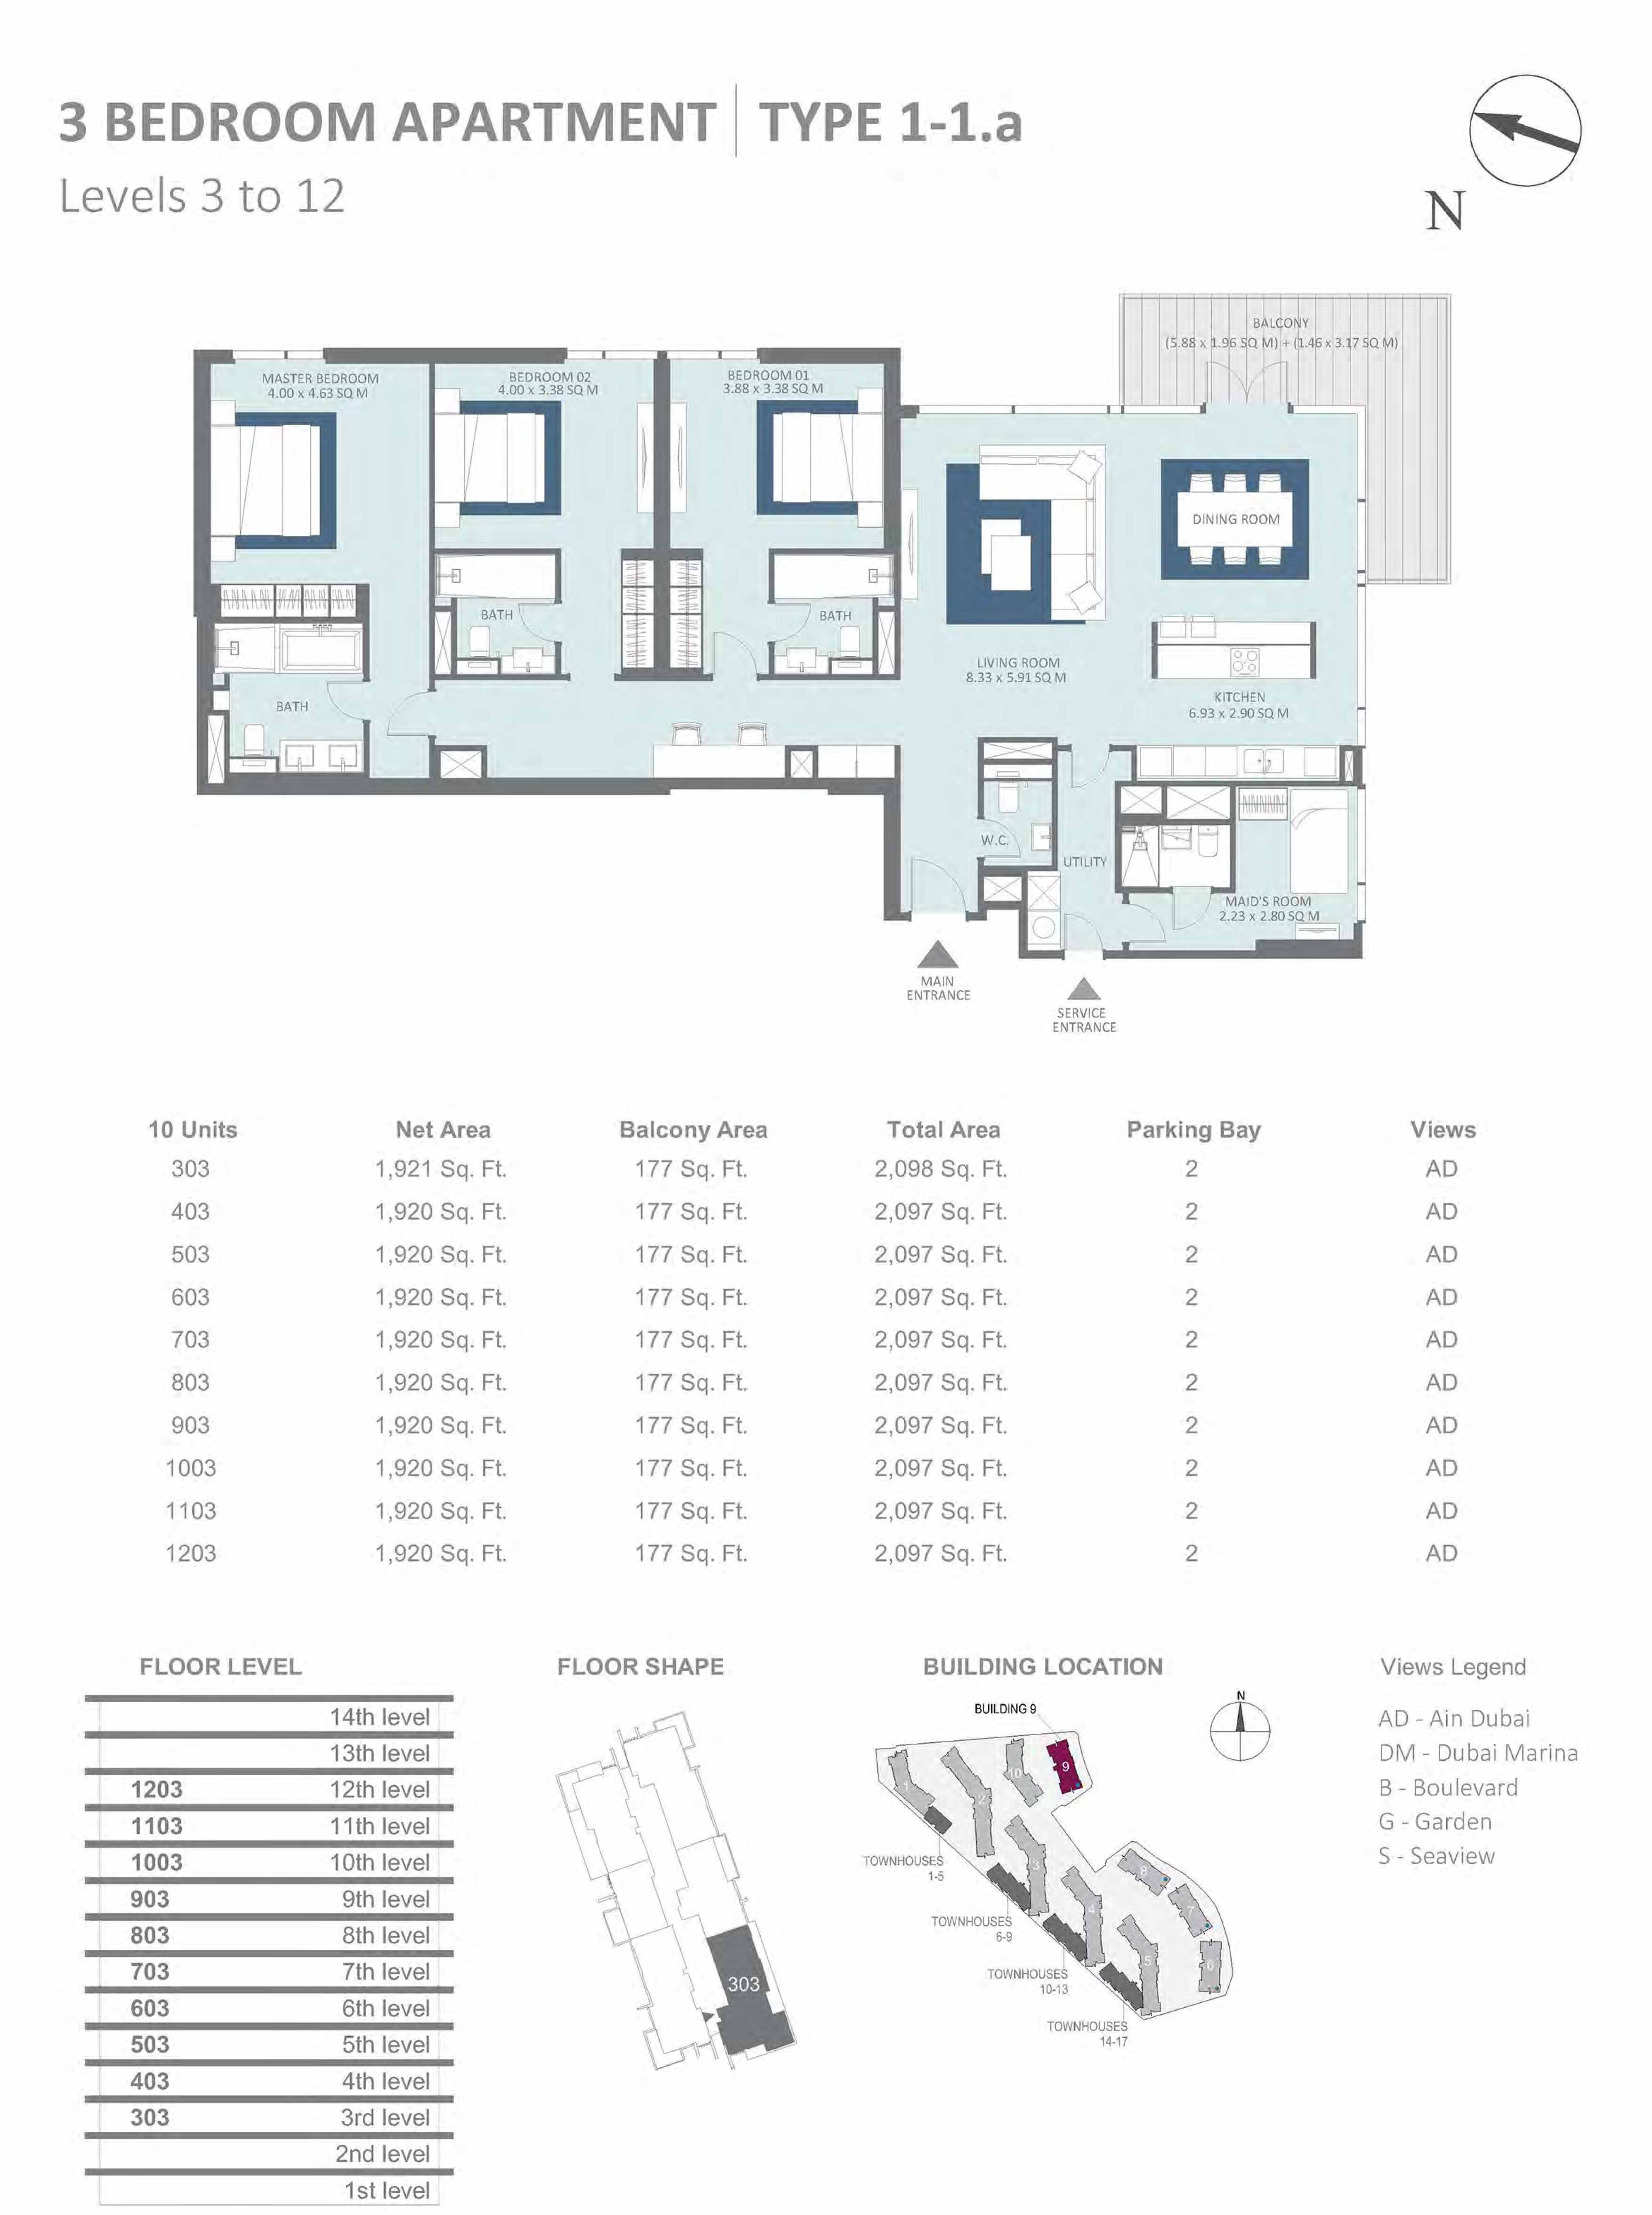 Building 9 - 3 Bedroom Type 1-1A, Level 3-to-12 Size 2097 to 2098  sq. ft.